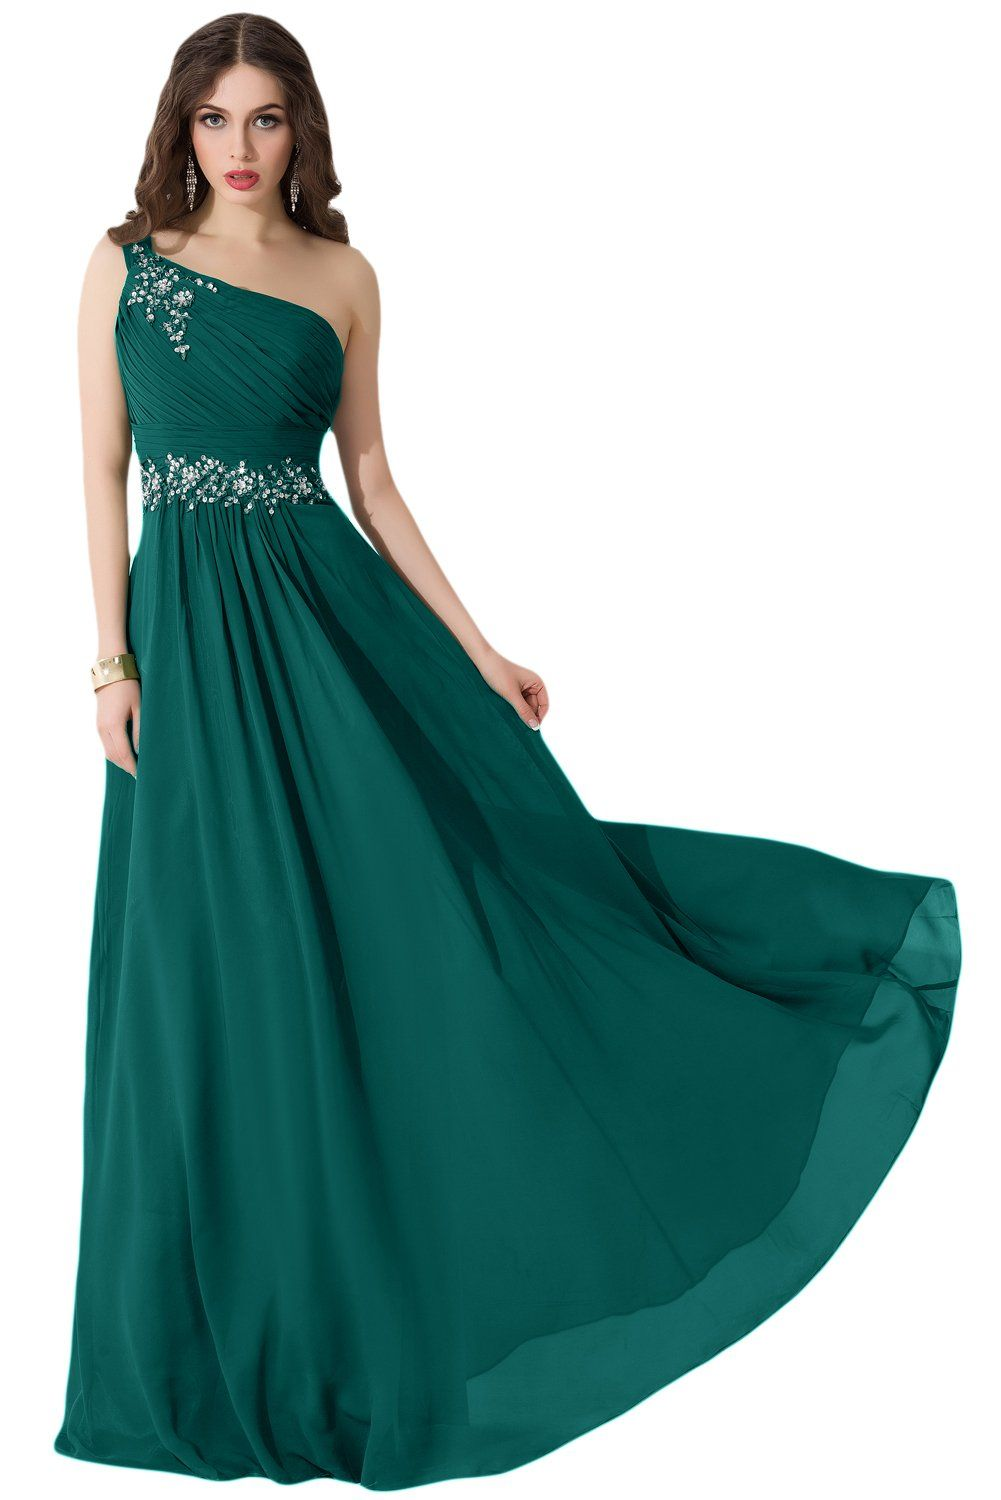 Sunvary 2015 One Shoulder Long Chiffon Bridesmaid Party Dresses Prom ...